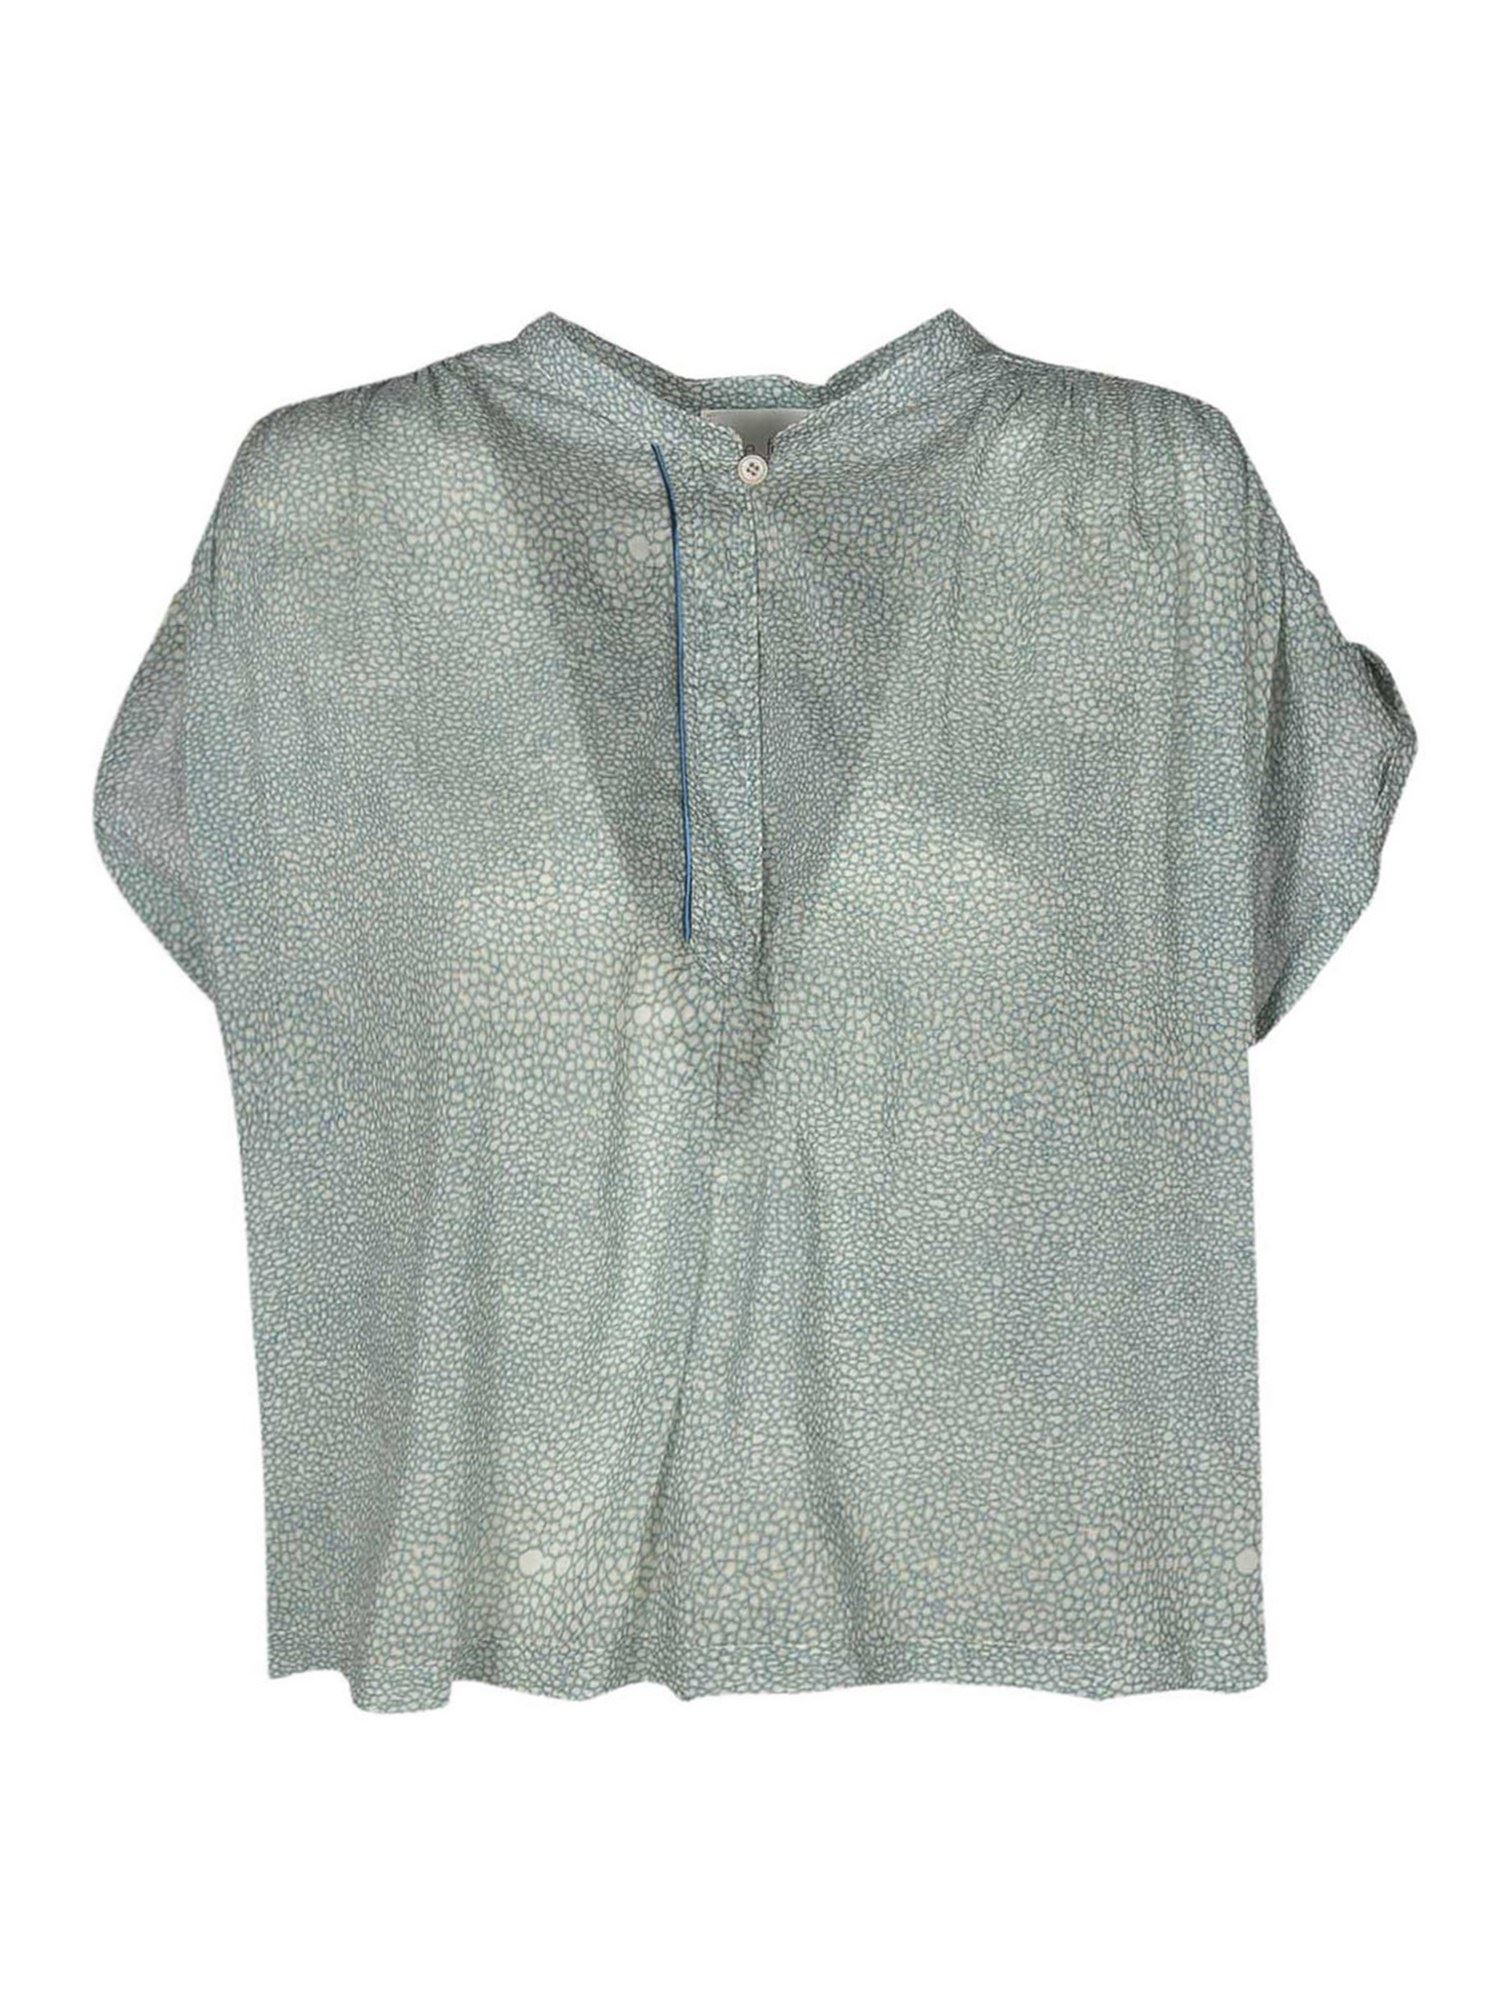 Forte Forte PRINTED TOP IN LIGHT BLUE